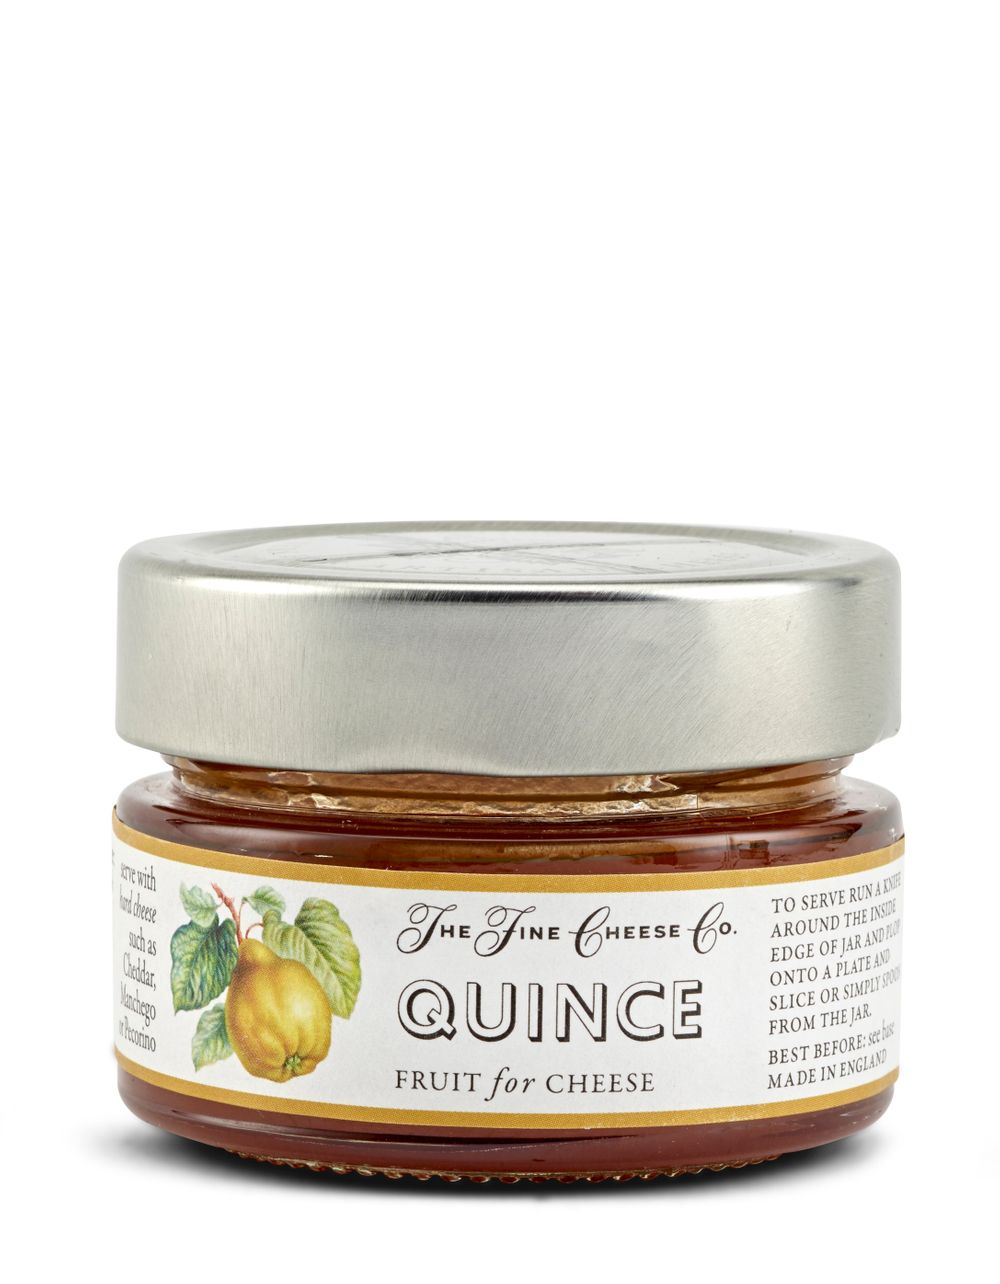 Quince Fruit Puree for Cheese